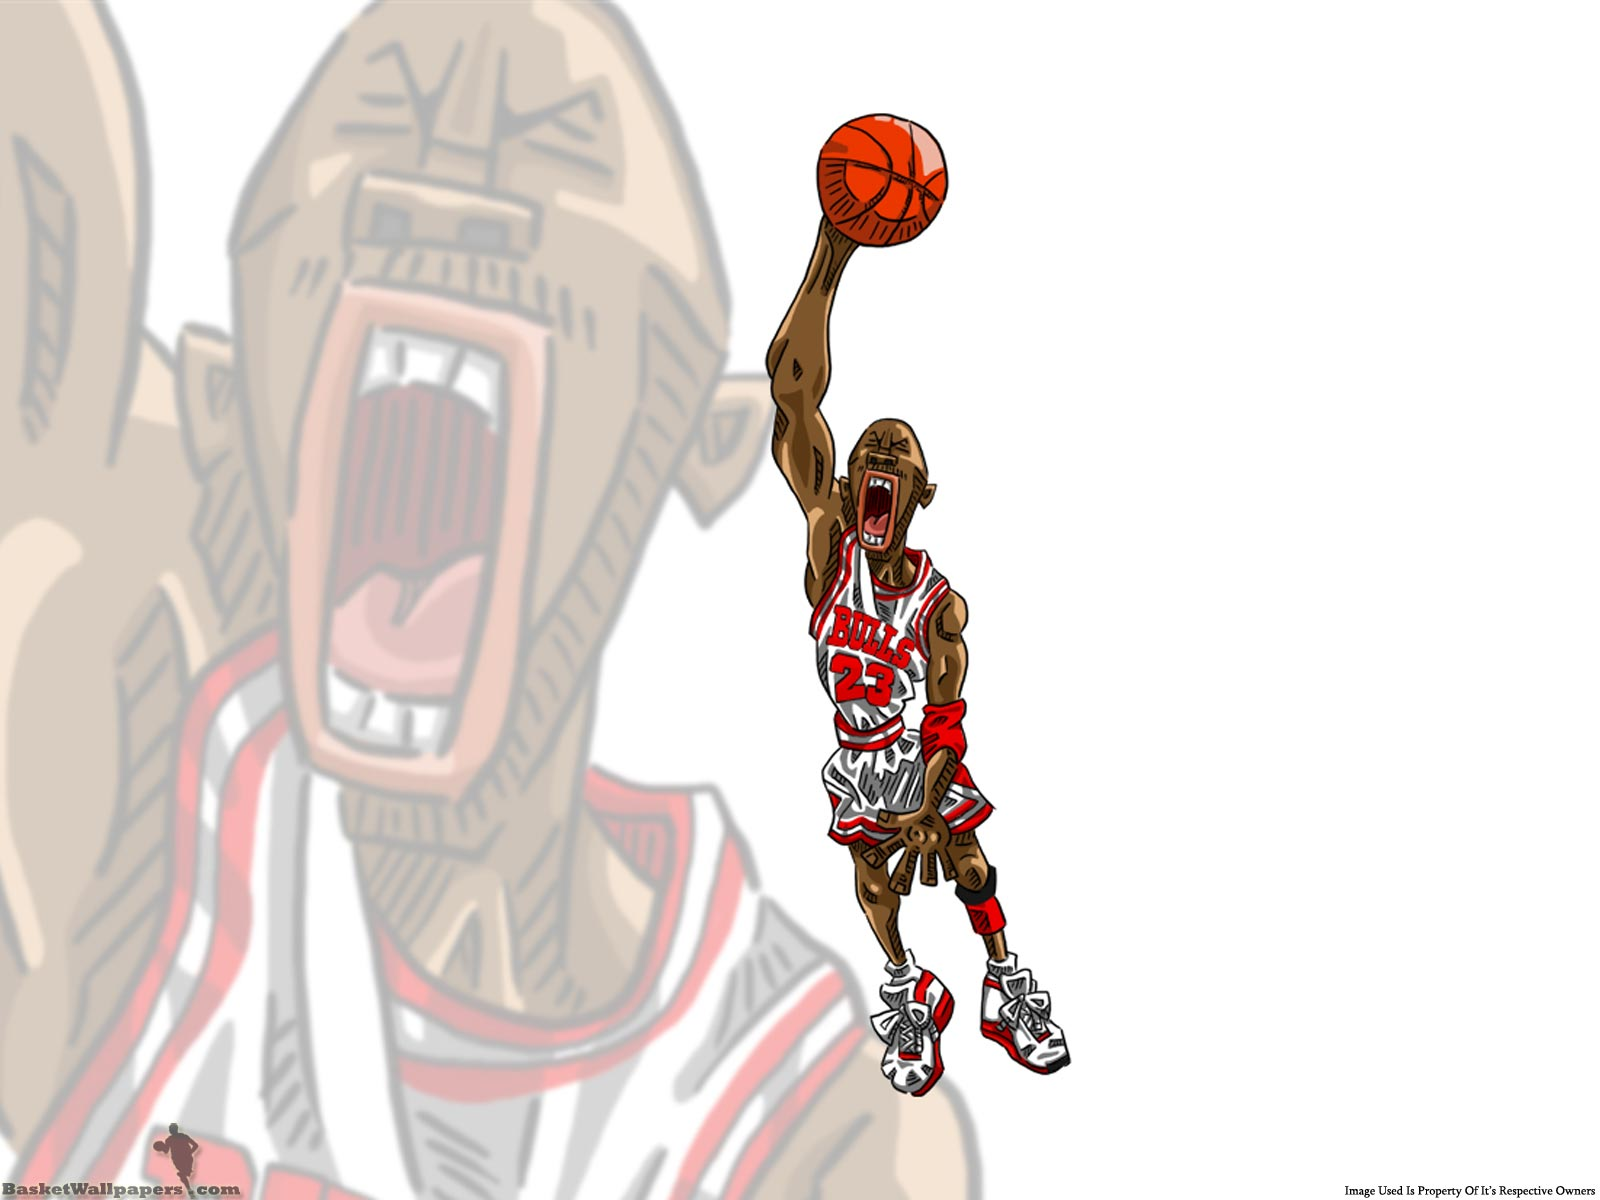 Michael Jordan Drawn Dunk Wallpaper Basketball Wallpapers at 1600x1200